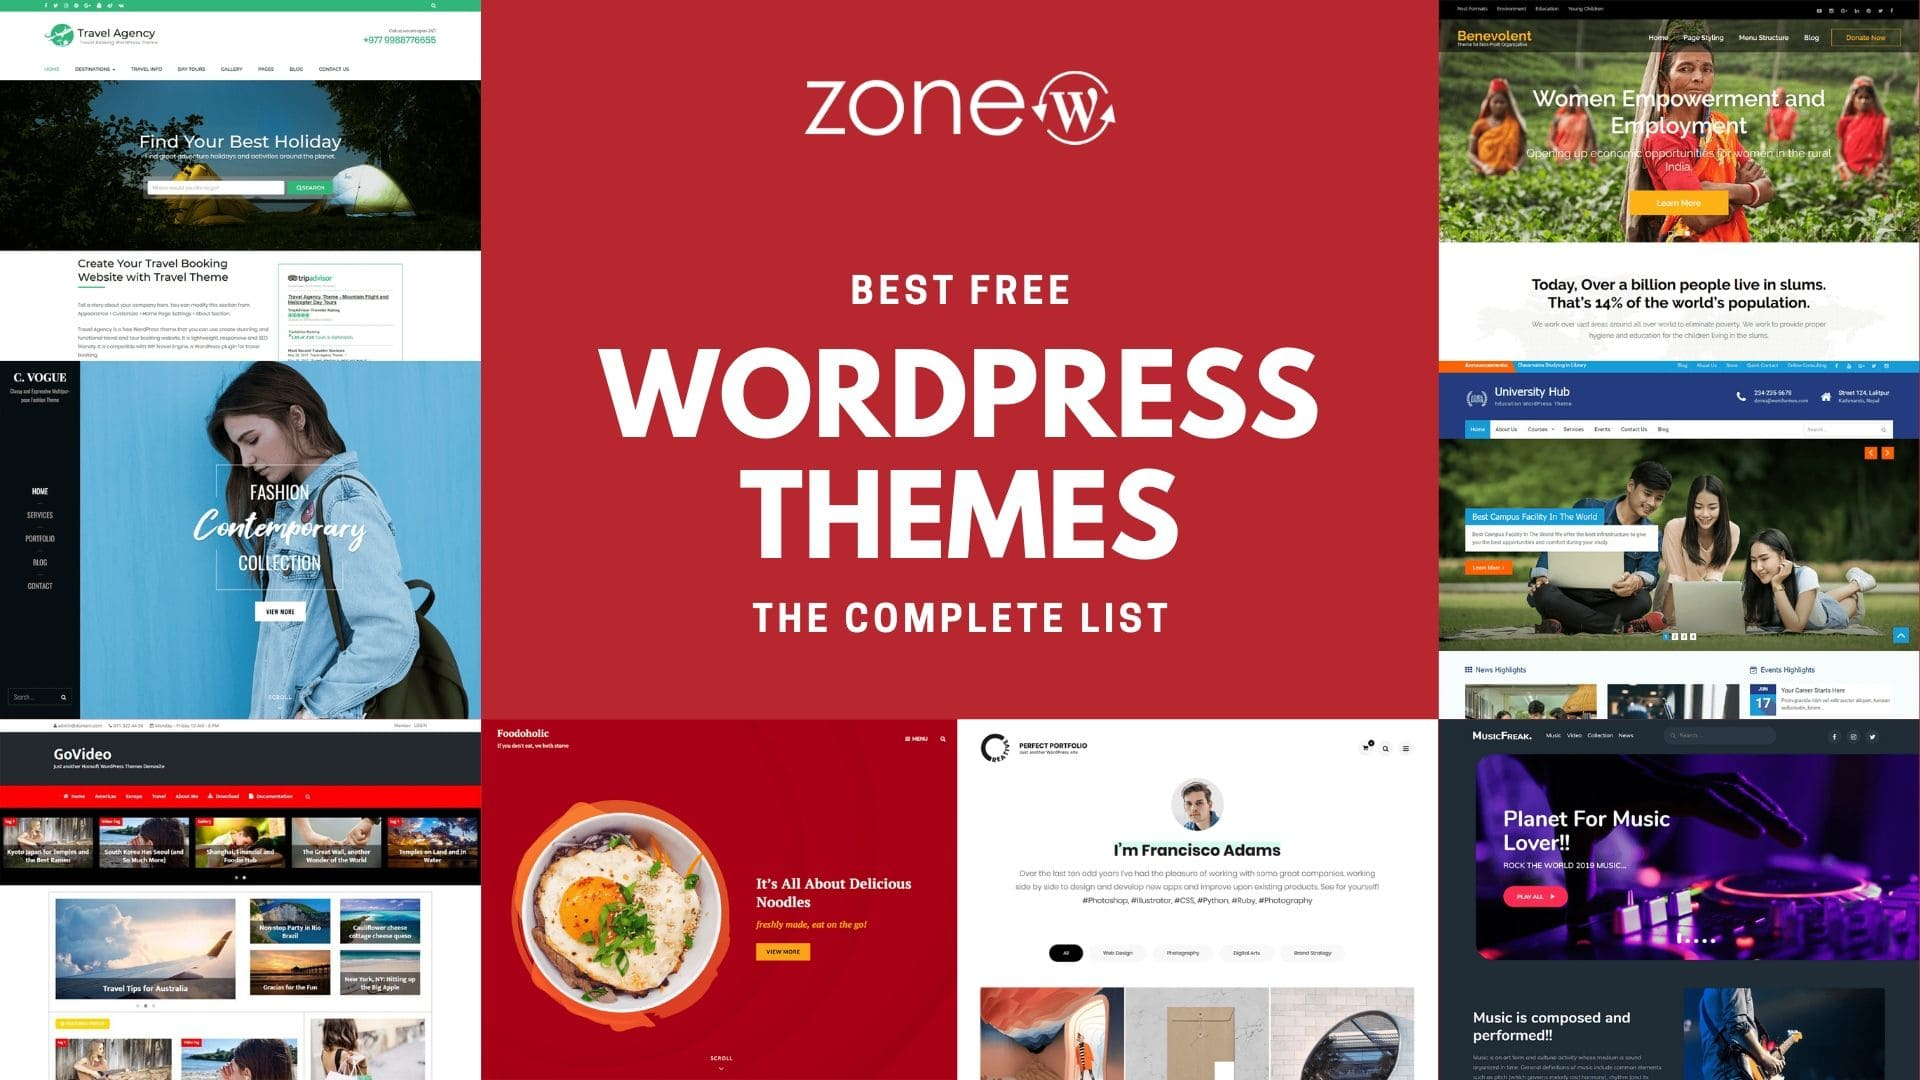 Best Free WordPress Themes – The Complete List